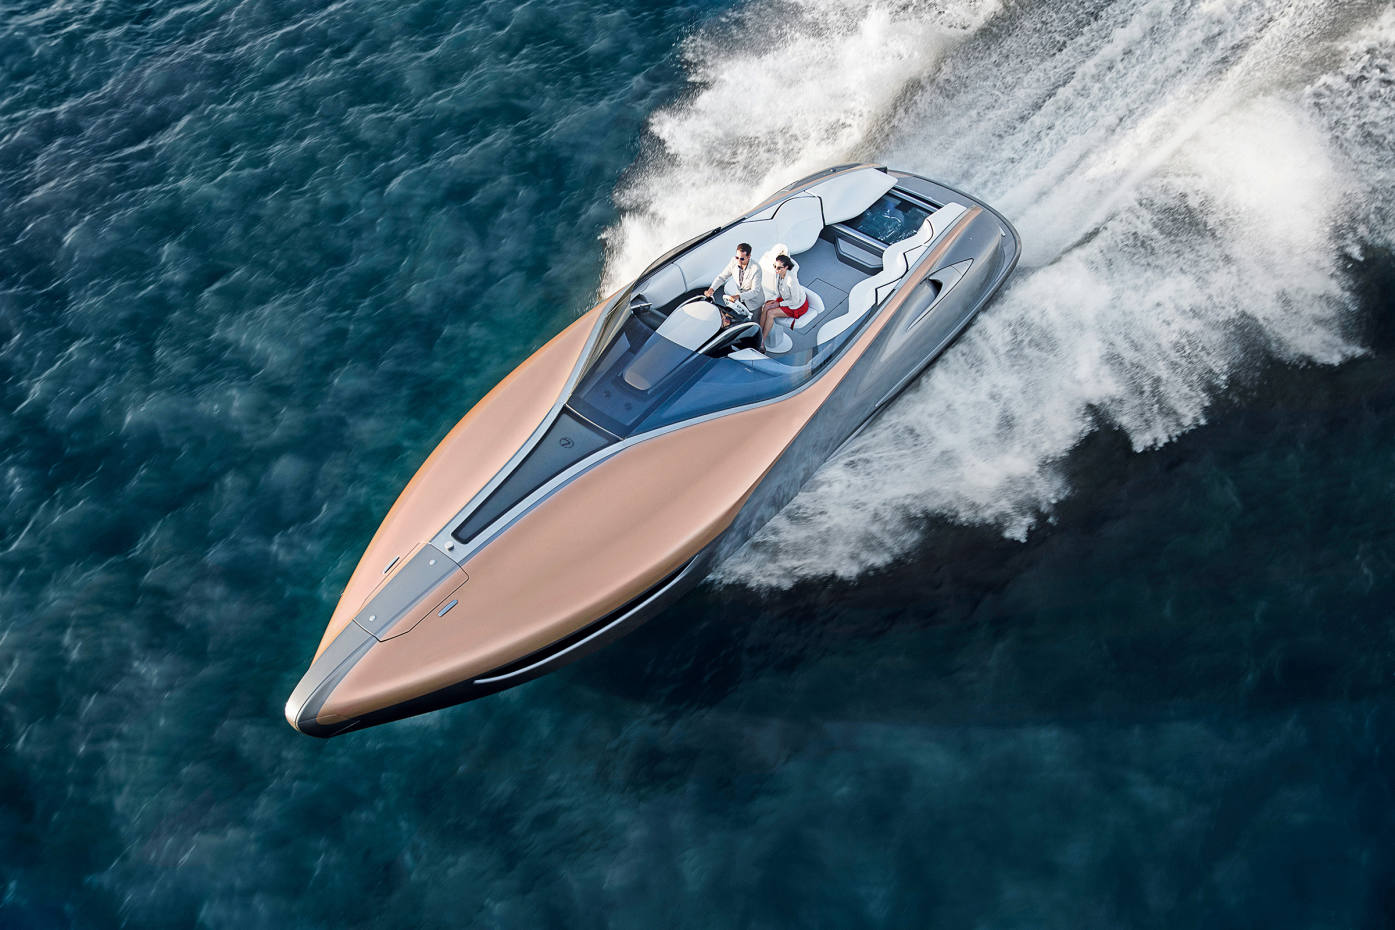 aston martin, mercedes-benz and bugatti hit the water | how to spend it